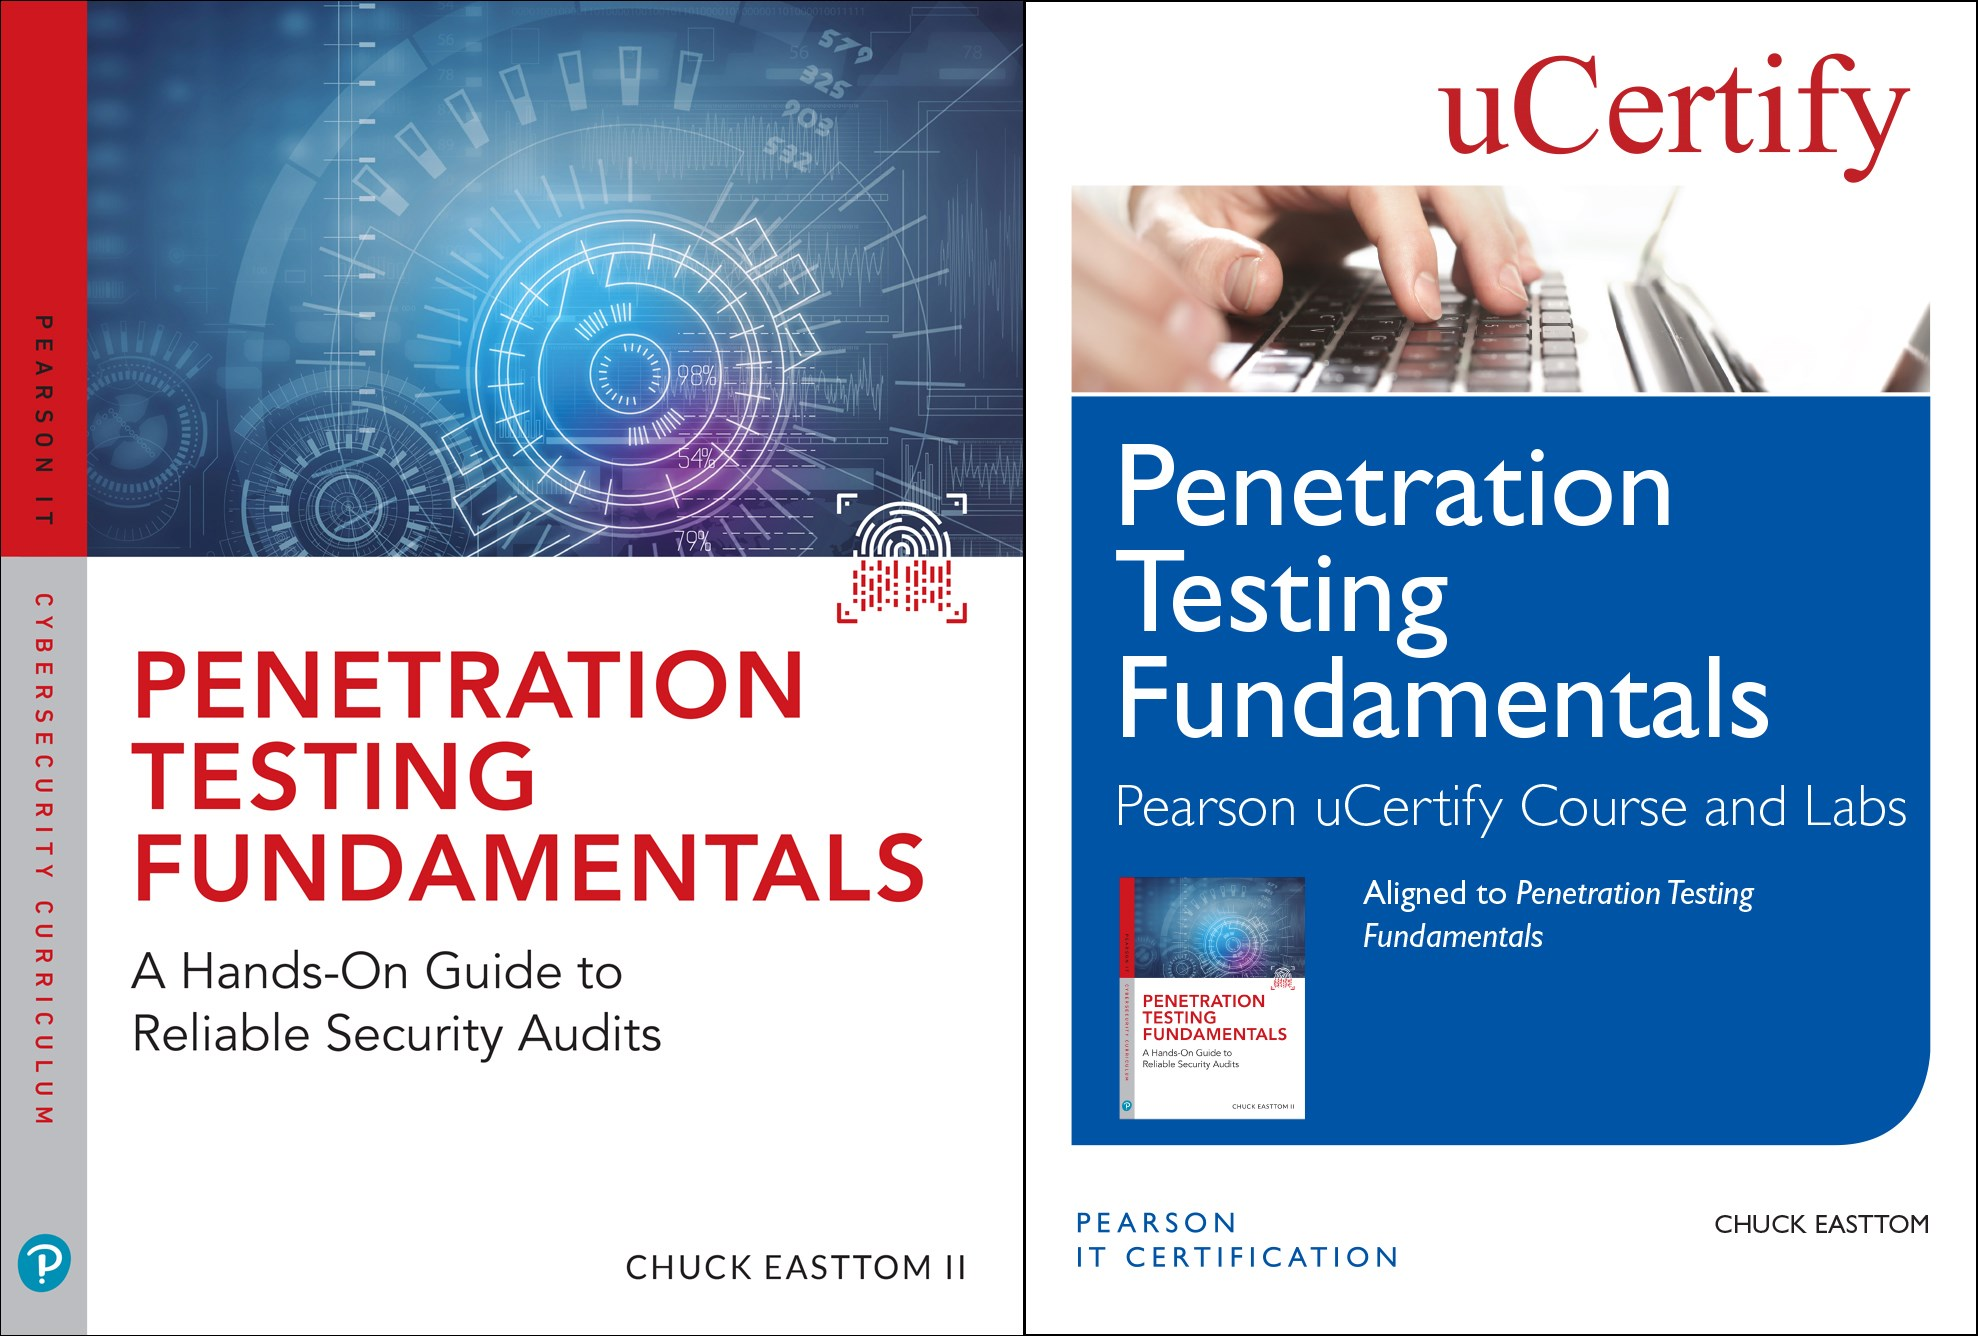 Penetration Testing Fundamentals Pearson uCertify Course and Labs and Textbook Bundle